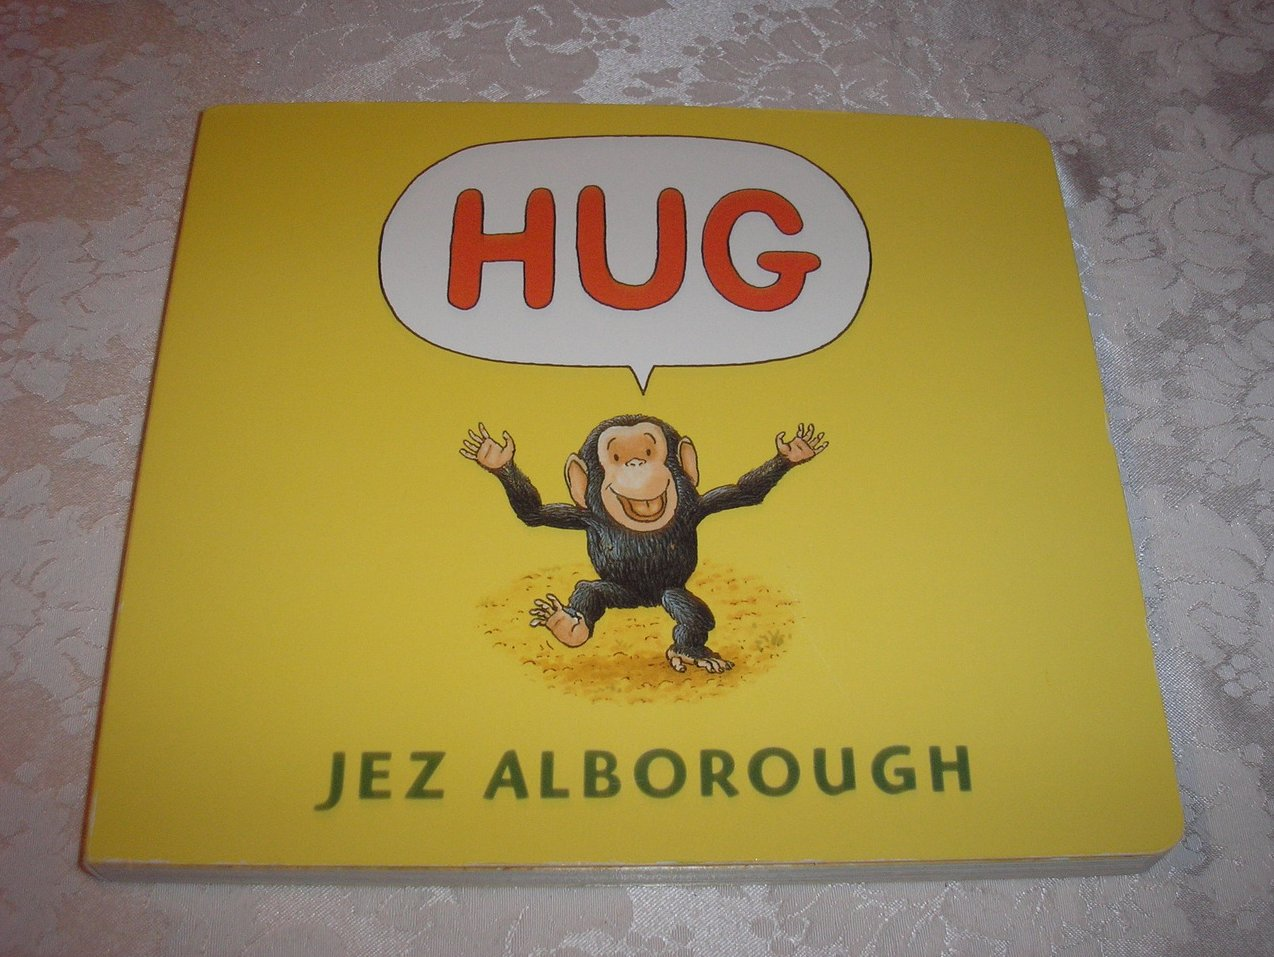 HUG Jez Alborough 9.25 x 10.5 inches lap size very good board book